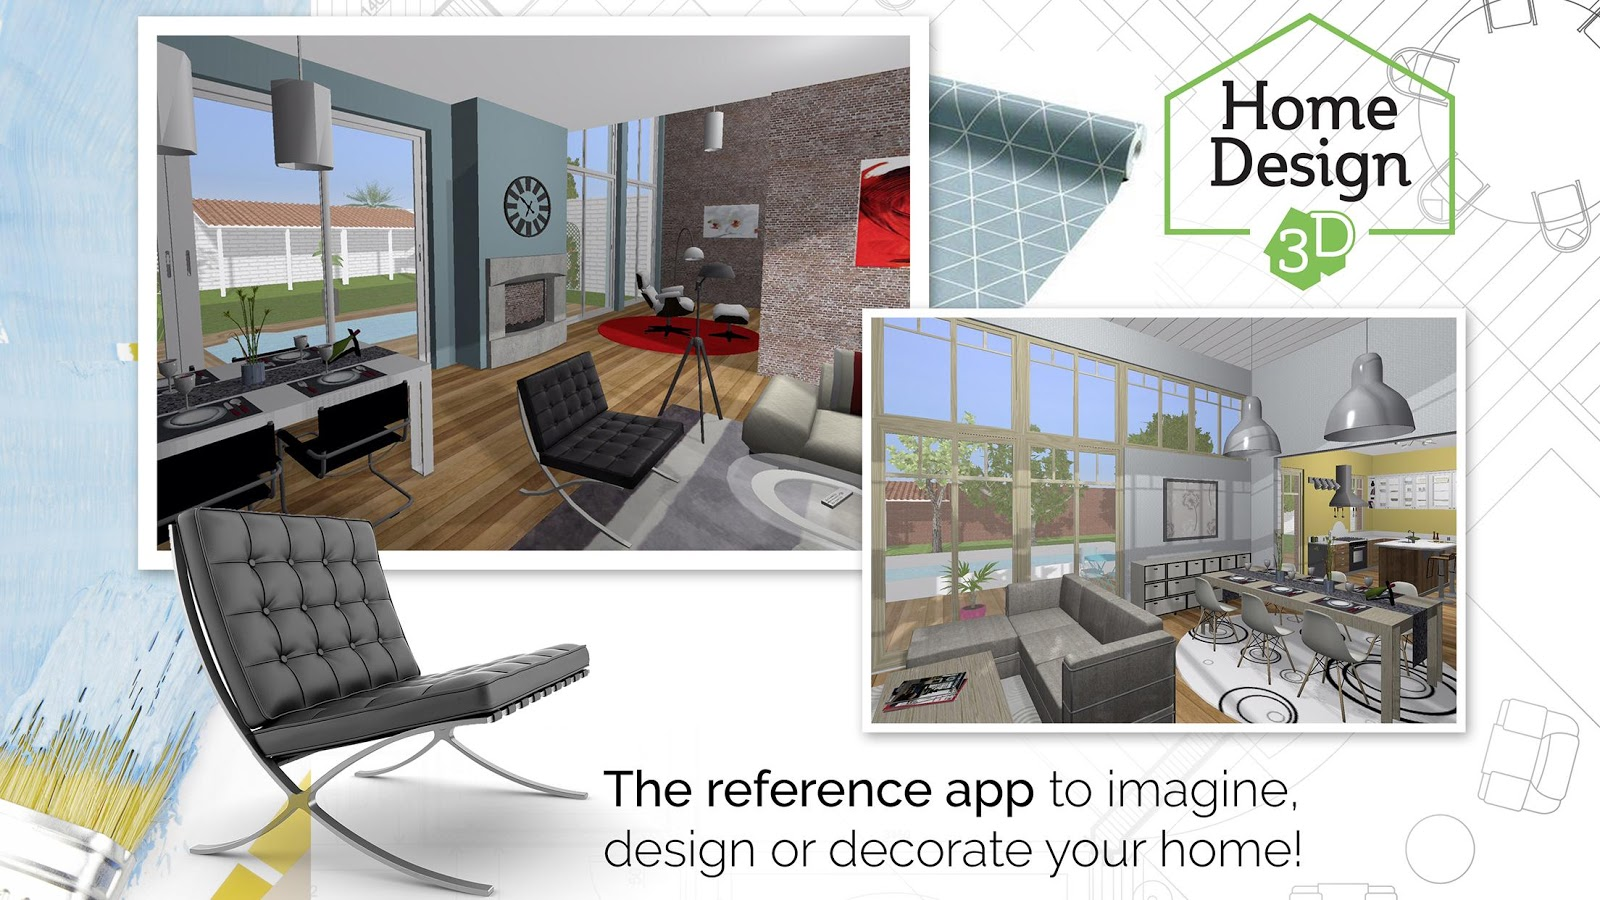 home design 3d freemium android apps on google play home design 3d freemium screenshot